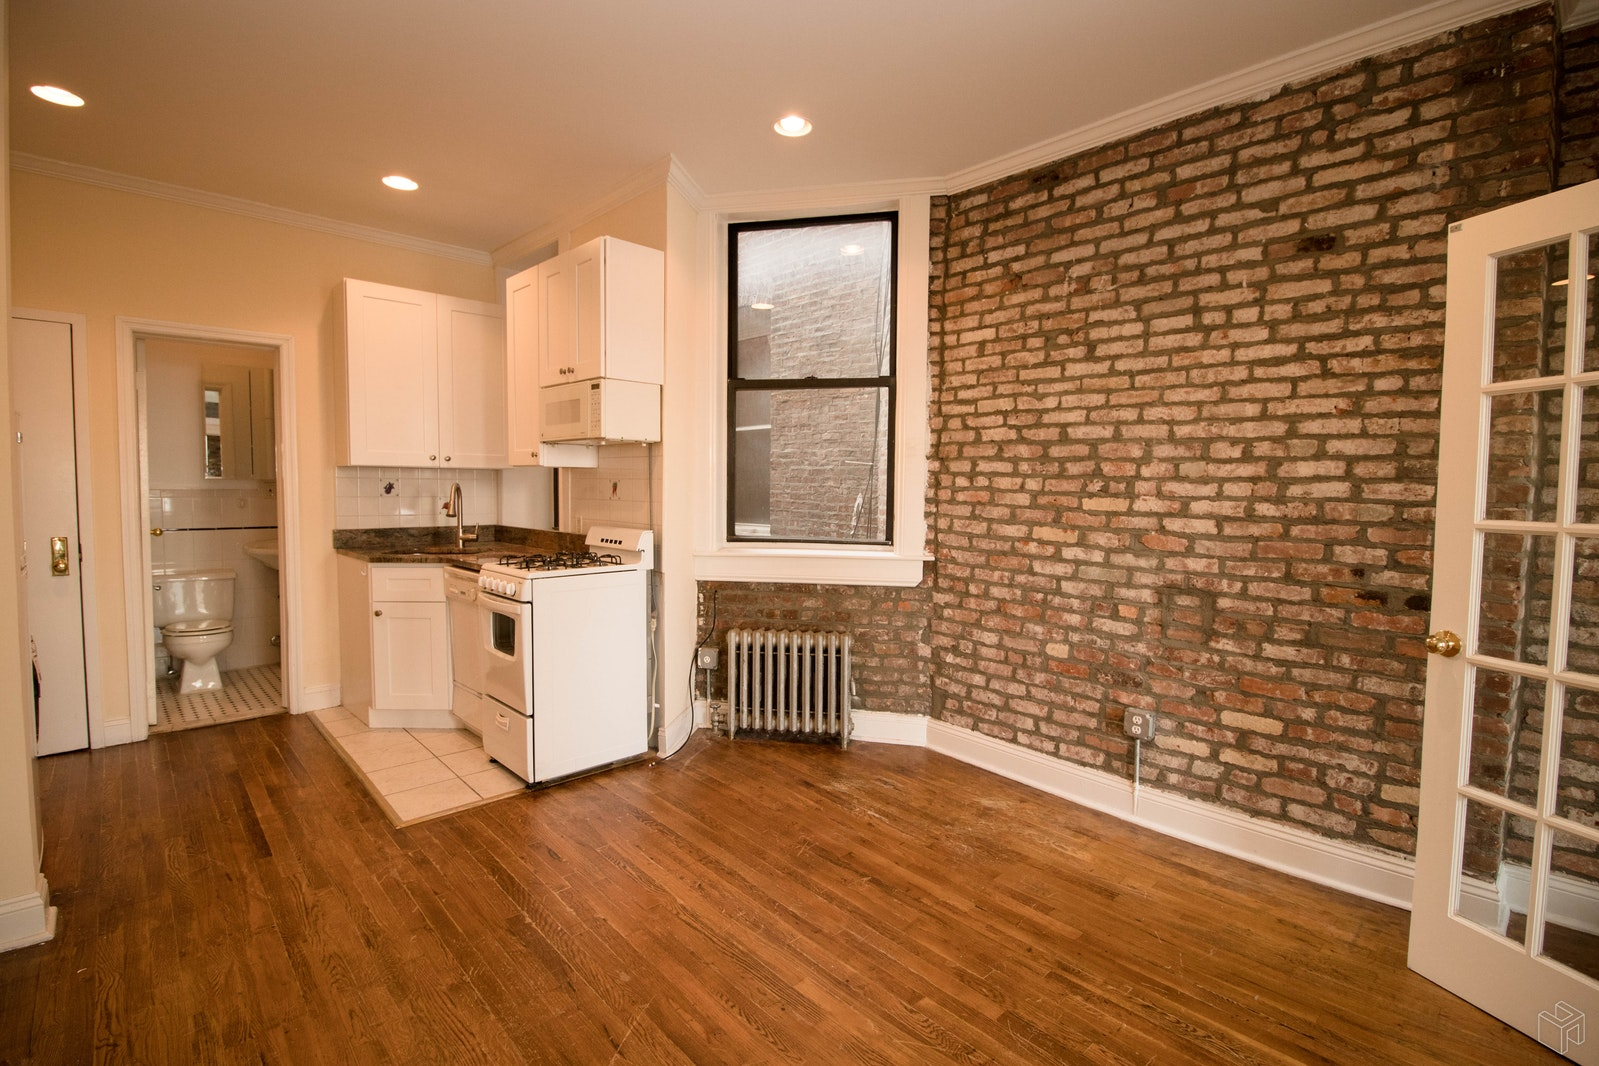 73 East 3rd Street D2, East Village, NYC, 10003, Price Not Disclosed, Rented Property, Halstead Real Estate, Photo 4